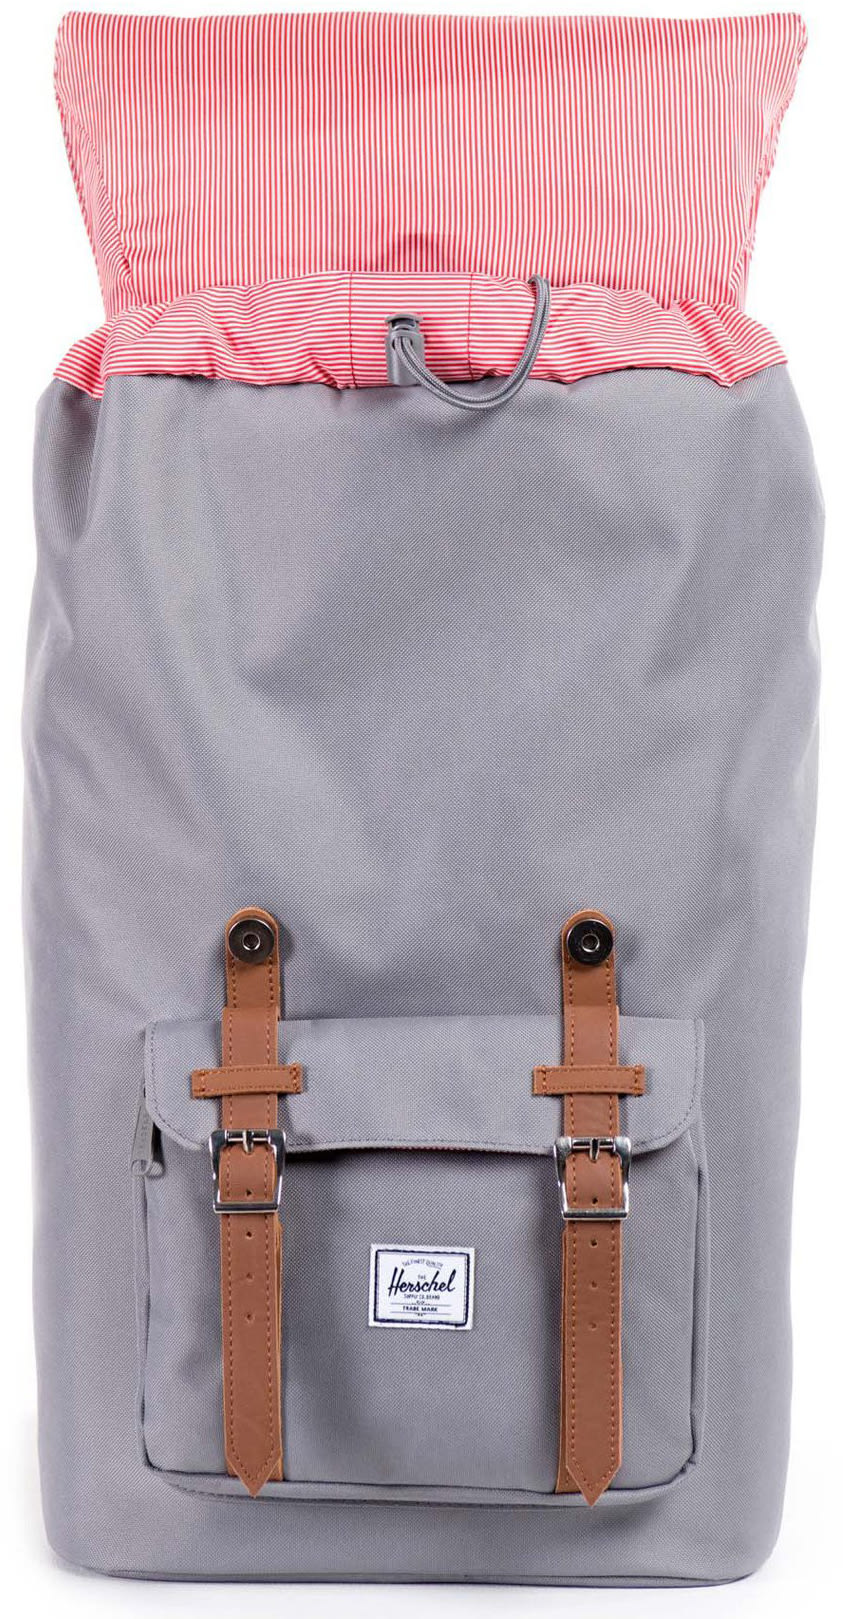 Water Skis For Sale >> On Sale Herschel Little America Backpack up to 40% off